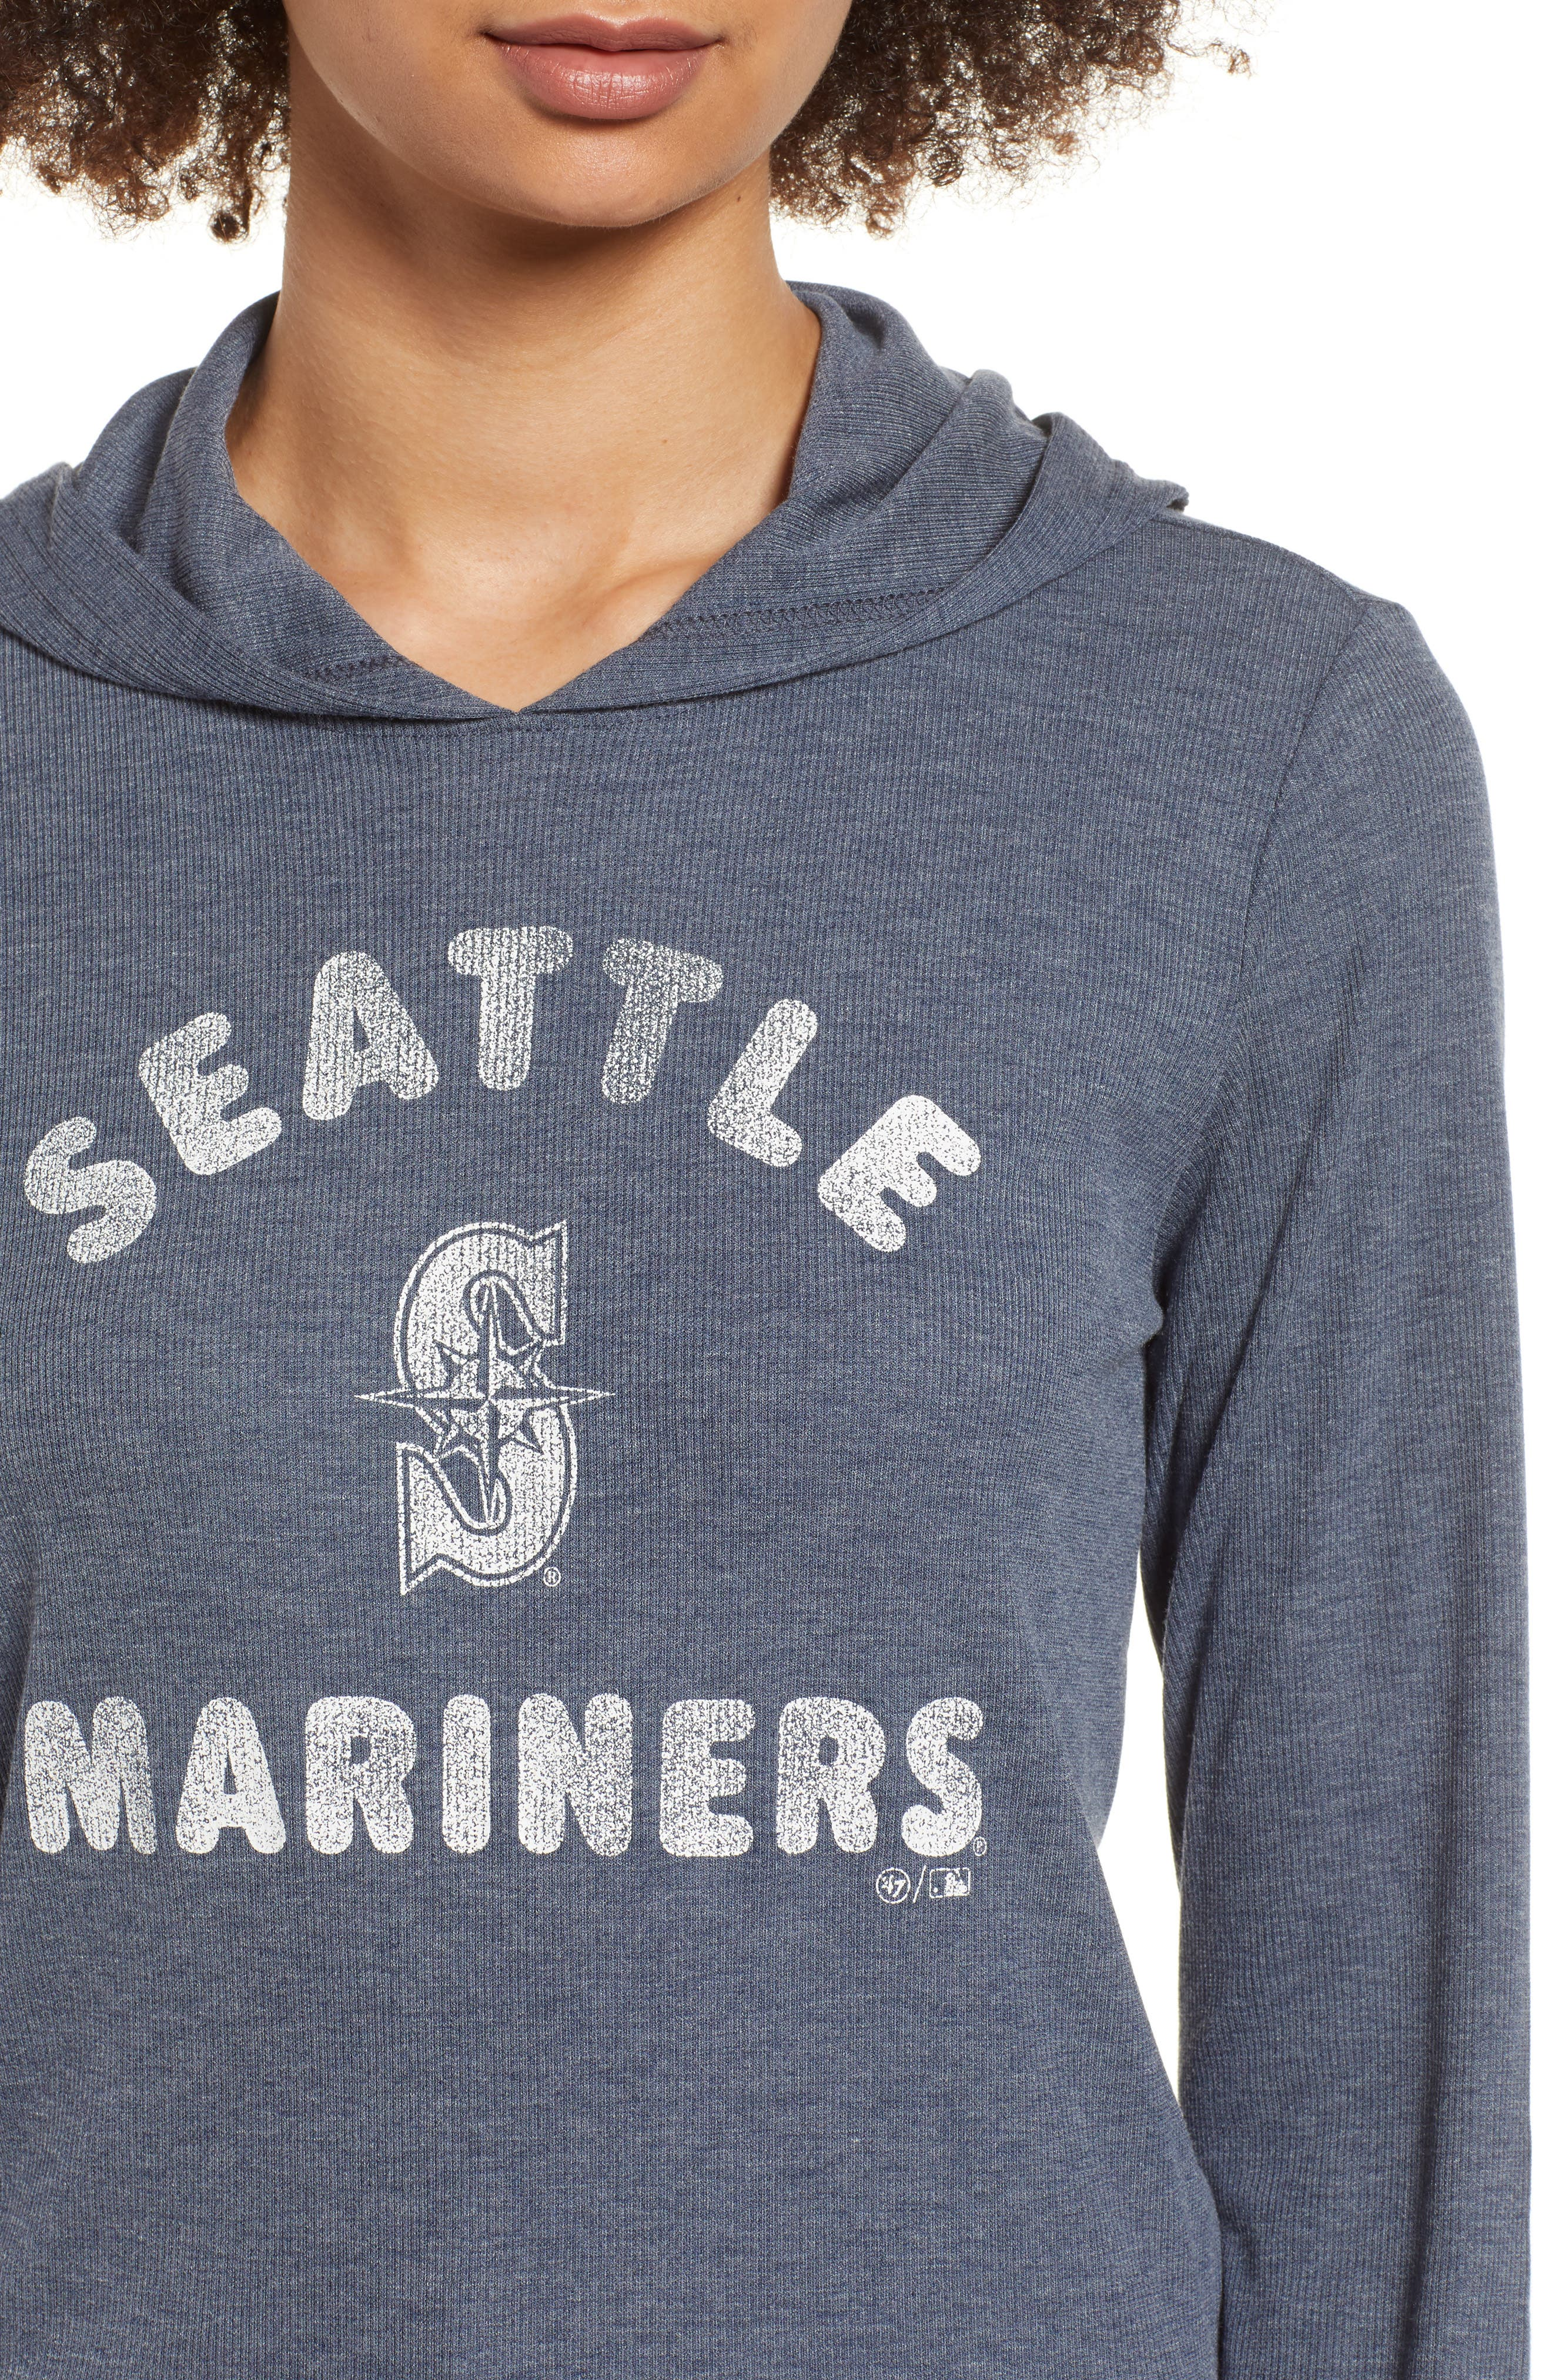 Campbell Seattle Mariners Rib Knit Hooded Top,                             Alternate thumbnail 4, color,                             Midnight